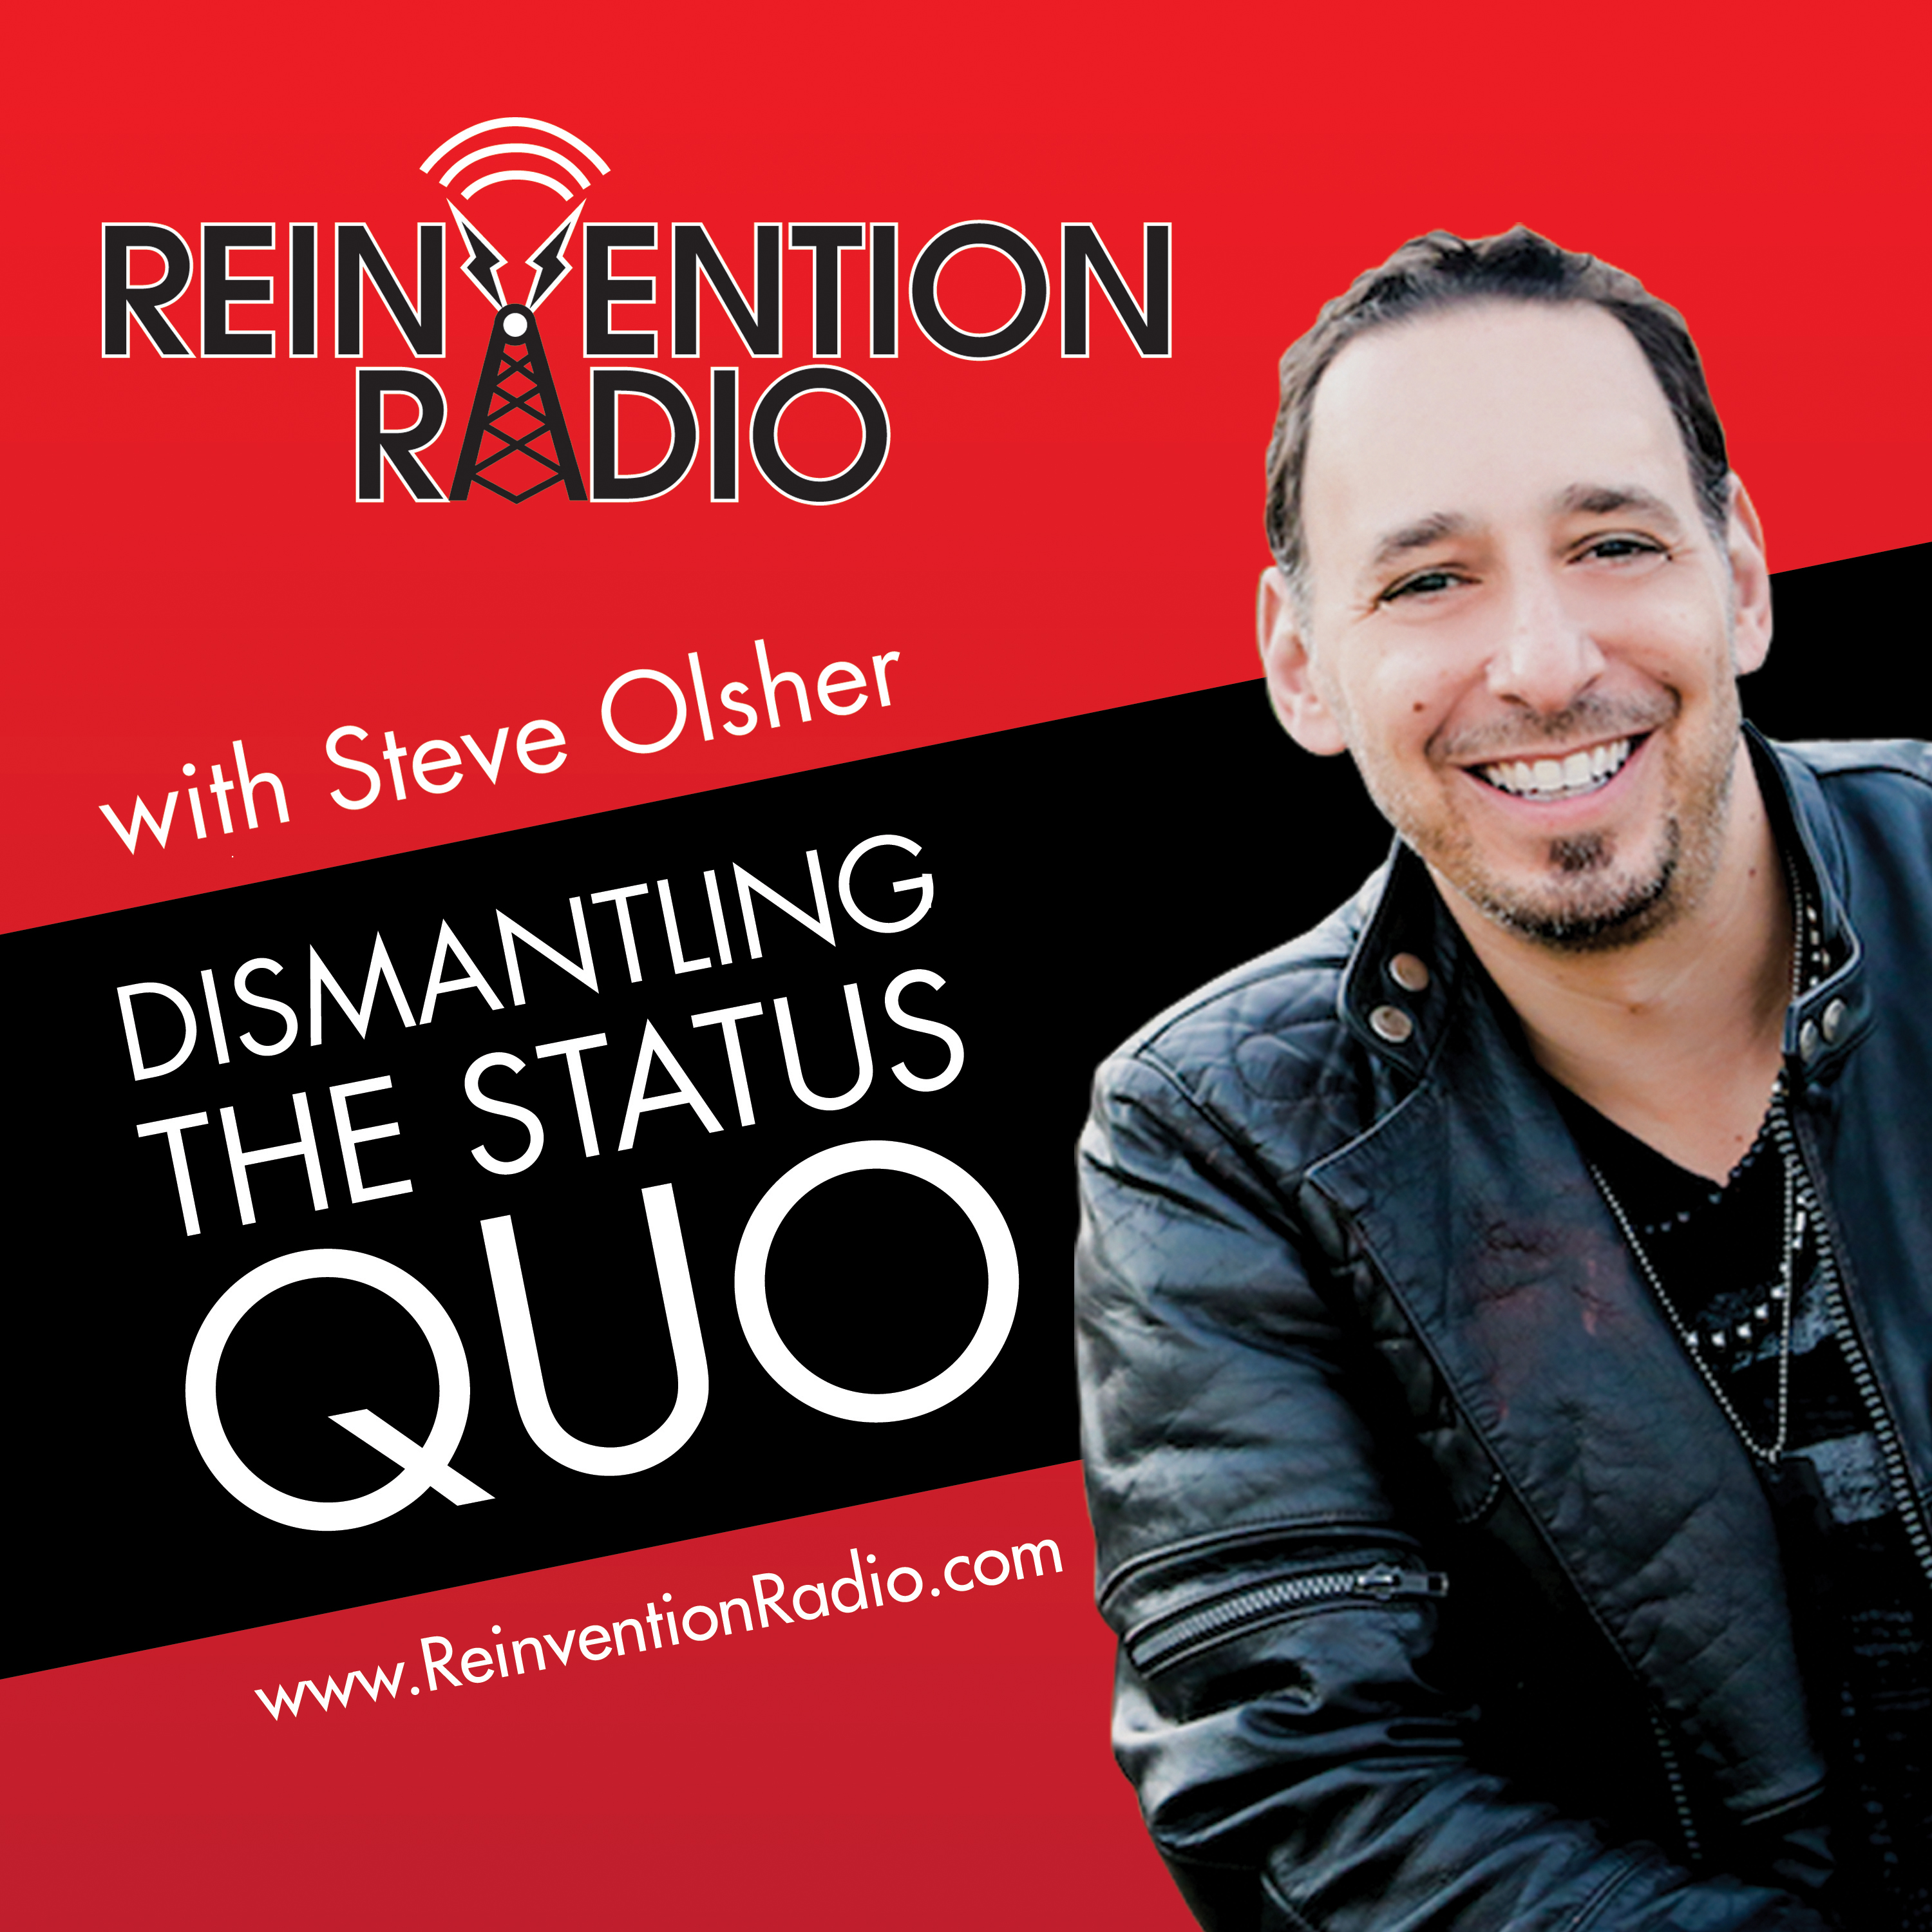 Reinvention Radio - Dismantling The Status Quo: Business | Politics | Entertainment | Marketing | Internet | Life | Money